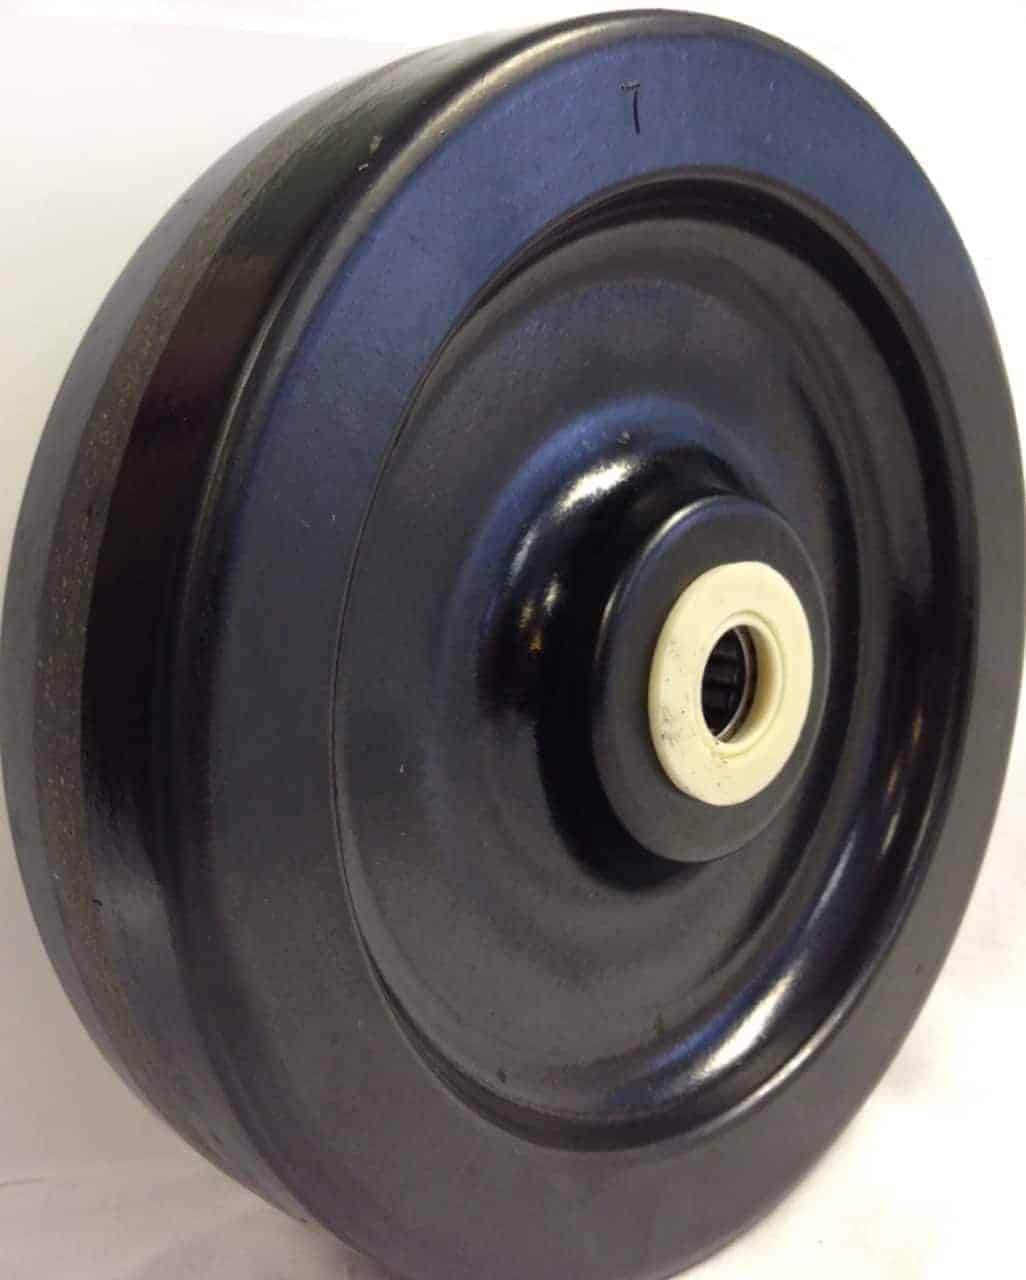 10″ Phenolic Wheel With 3-1/4″ Hub 1-1/4″ Roller Bearing 2500 Lbs Capacity